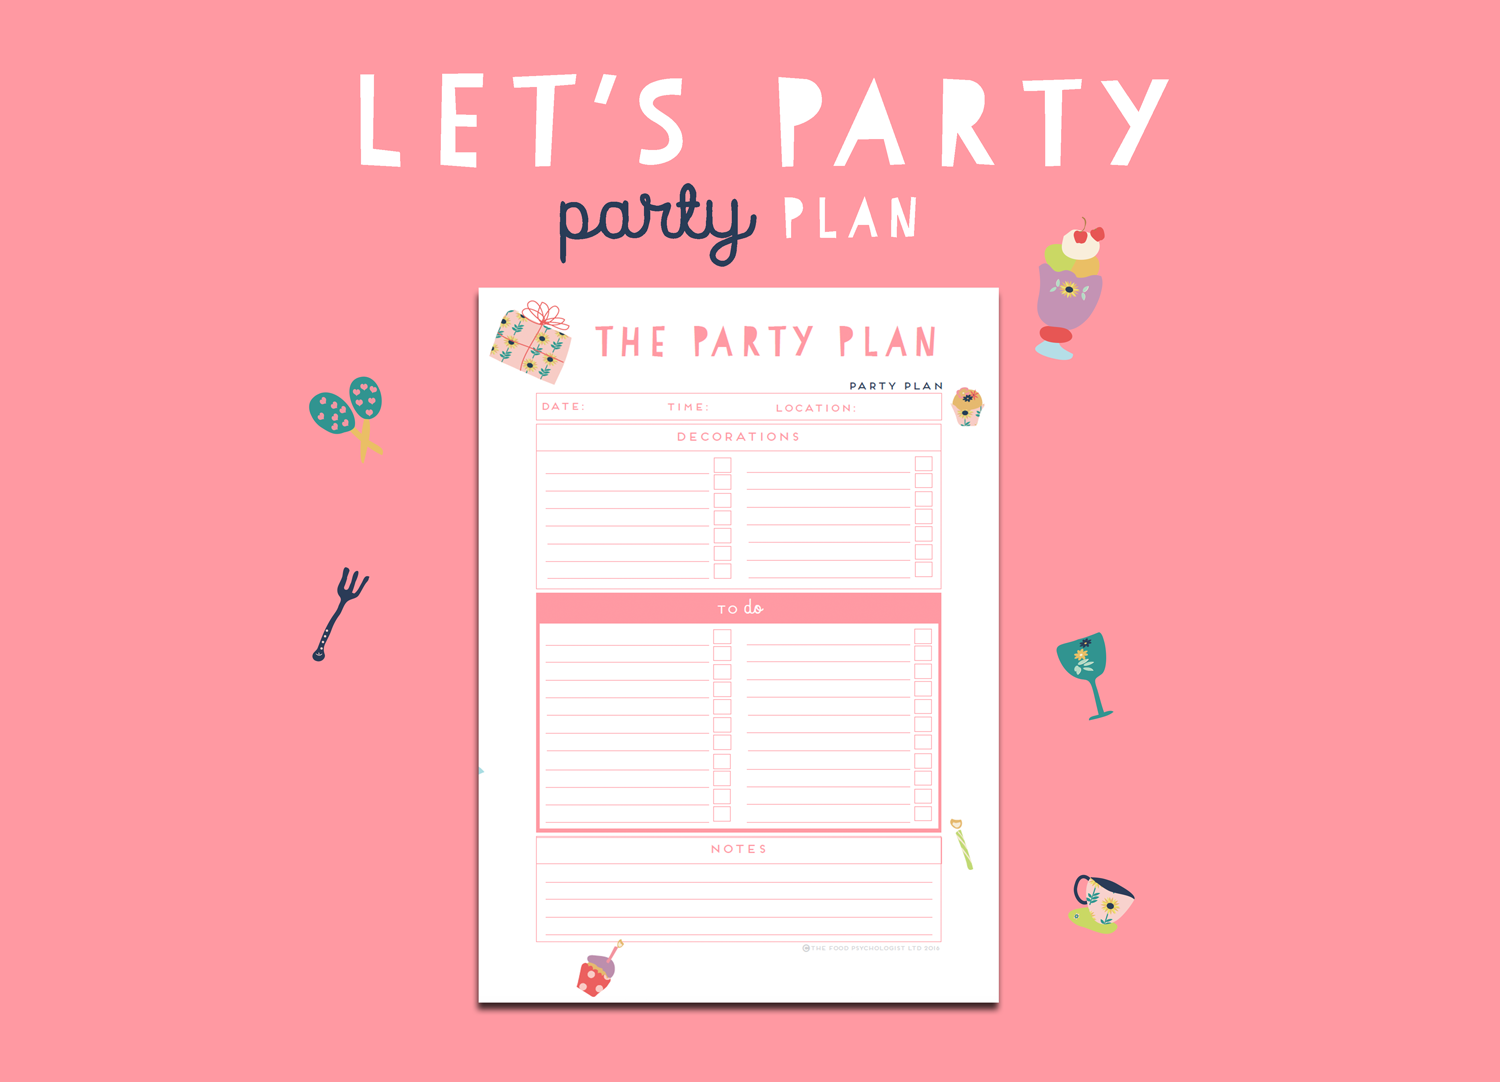 Let's Party Party Plan (Rose)